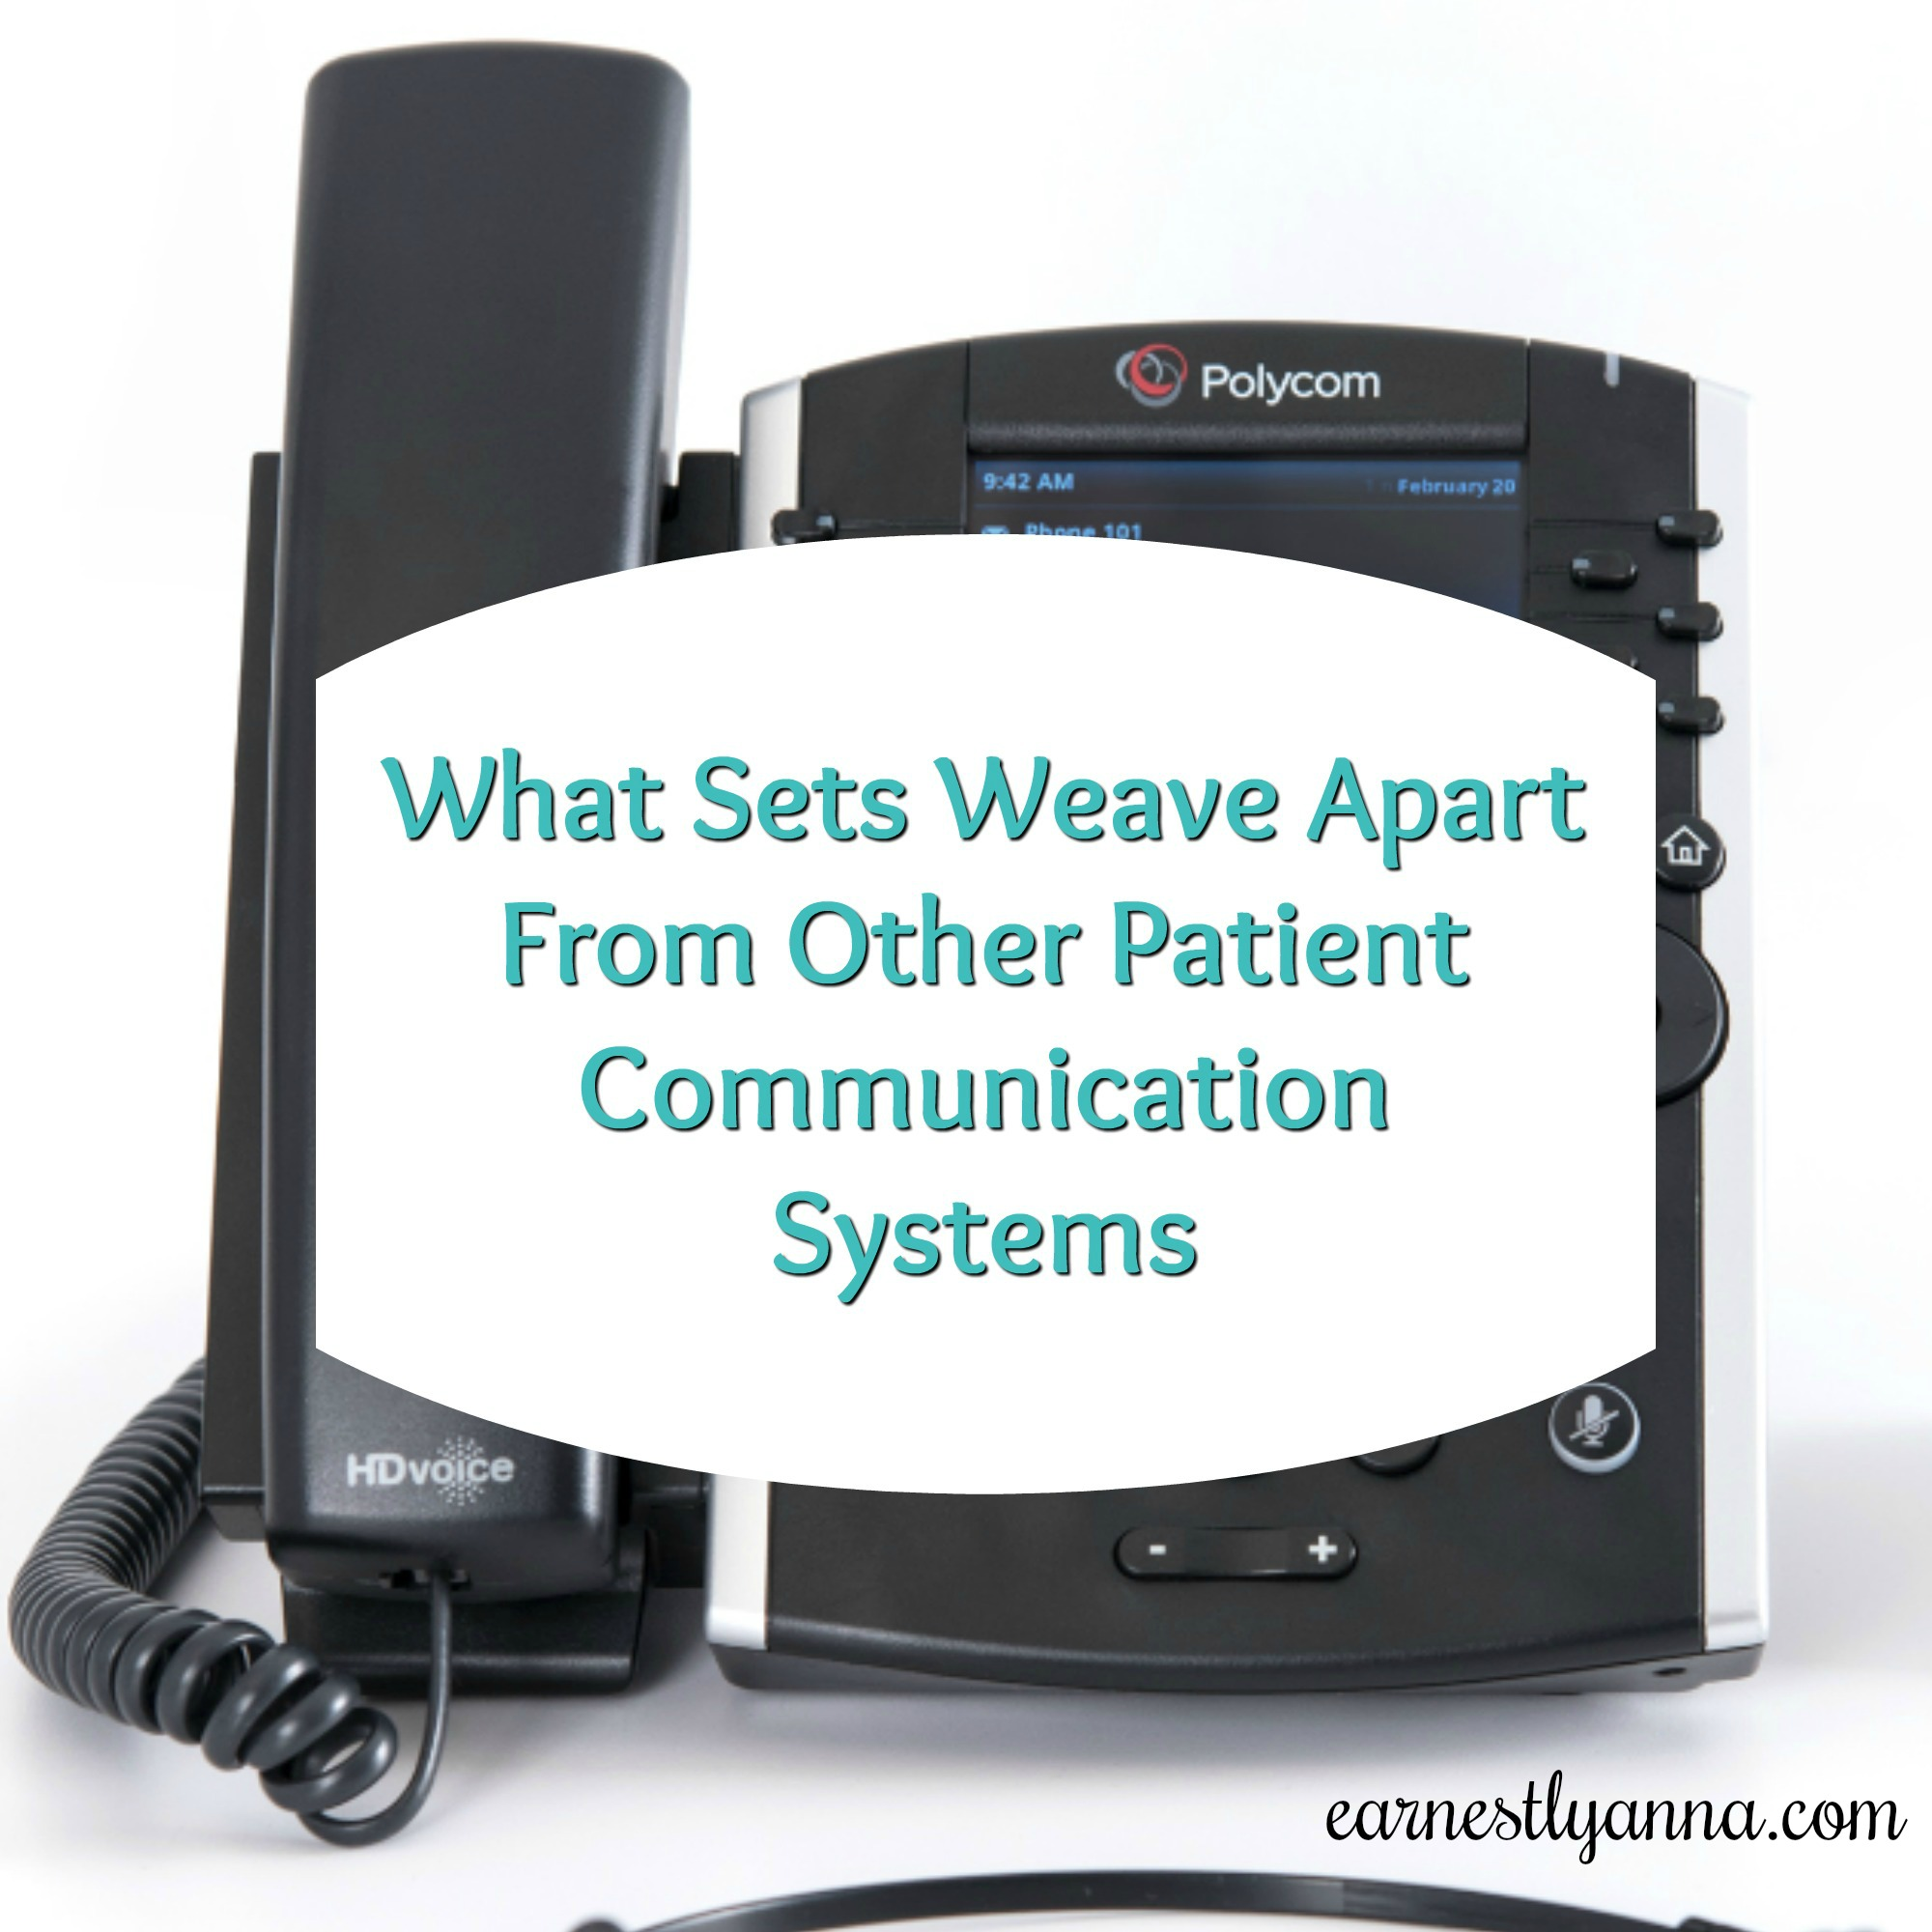 What-Sets-Weave-Apart-From-Other-Patient-Communication-Systems